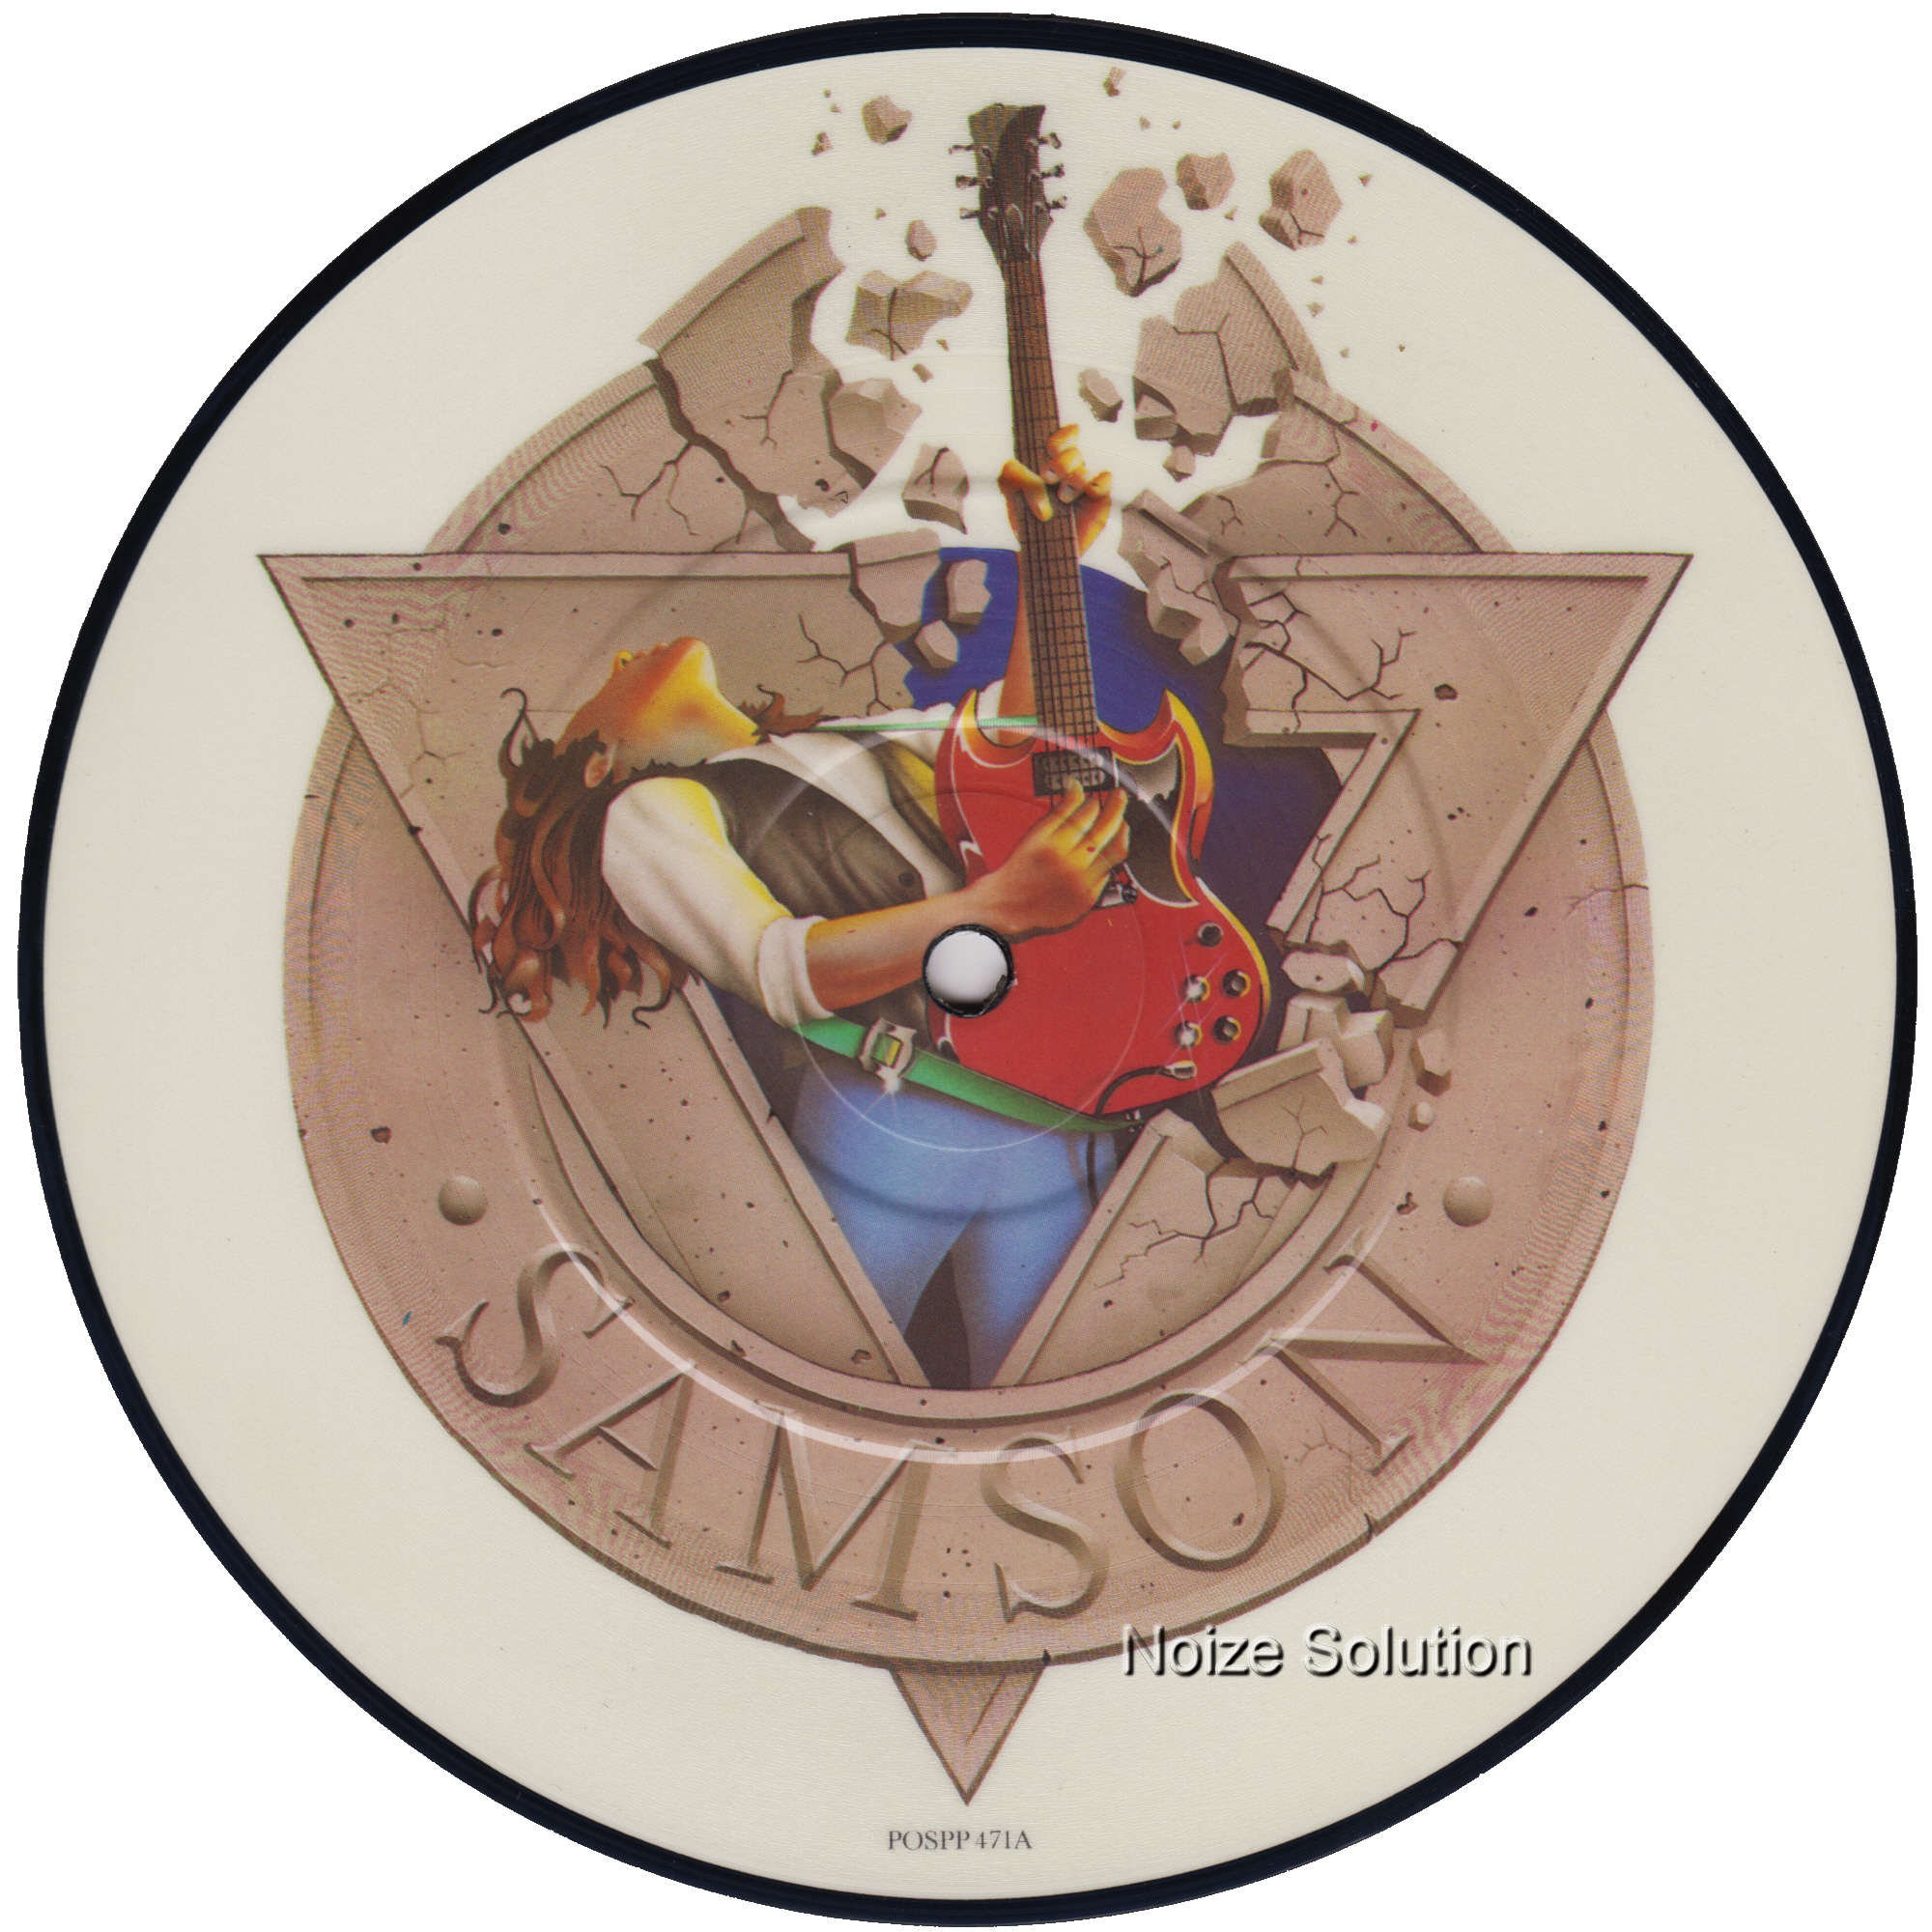 Samson - Losing My Grip 7 inch vinyl Picture Disc Record Side 1.